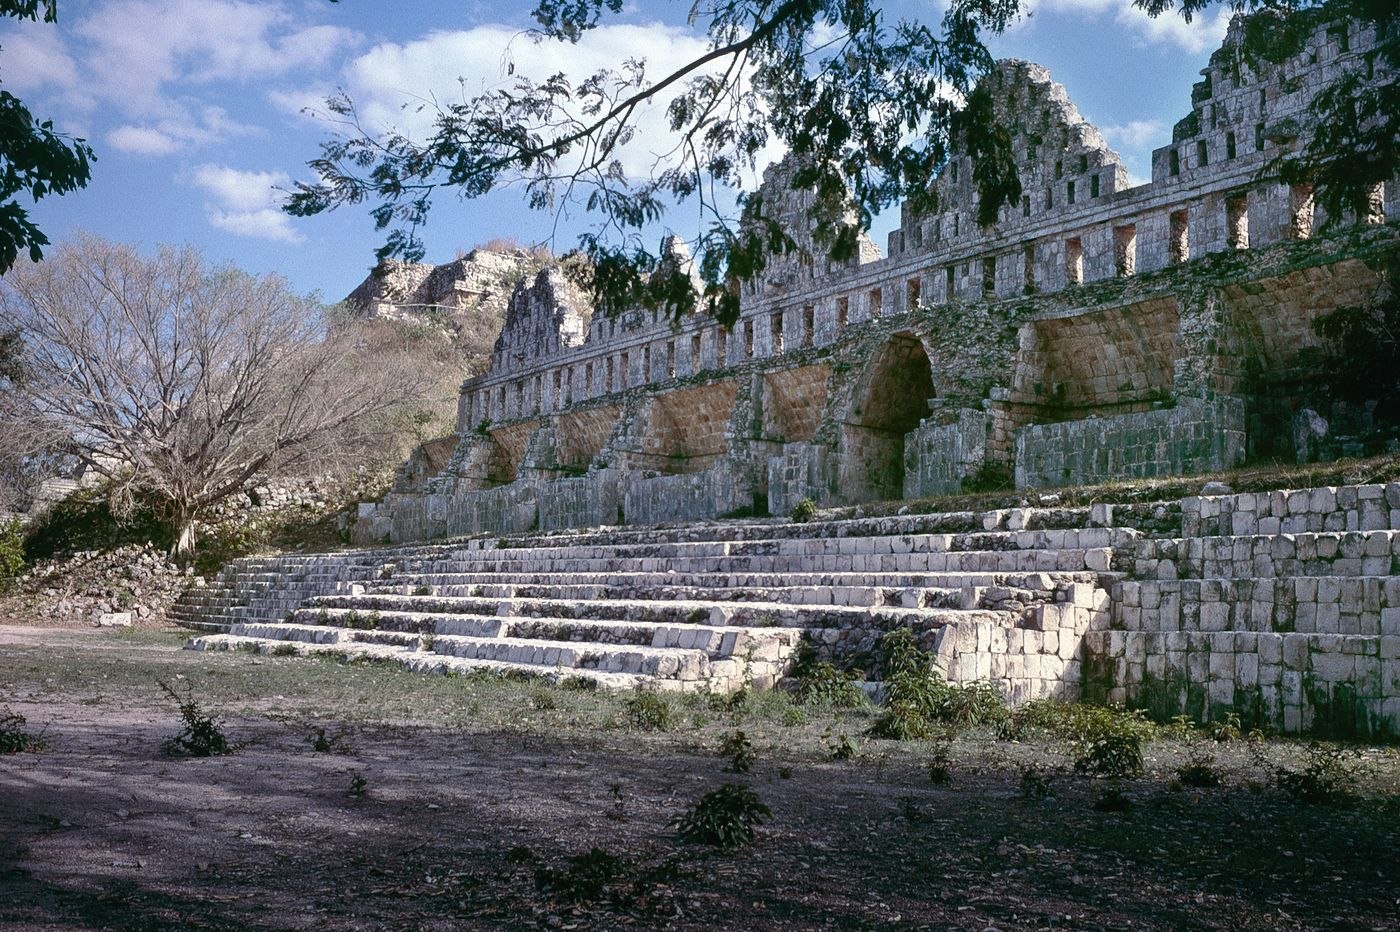 To get closer to Mayan ruins, travel farther